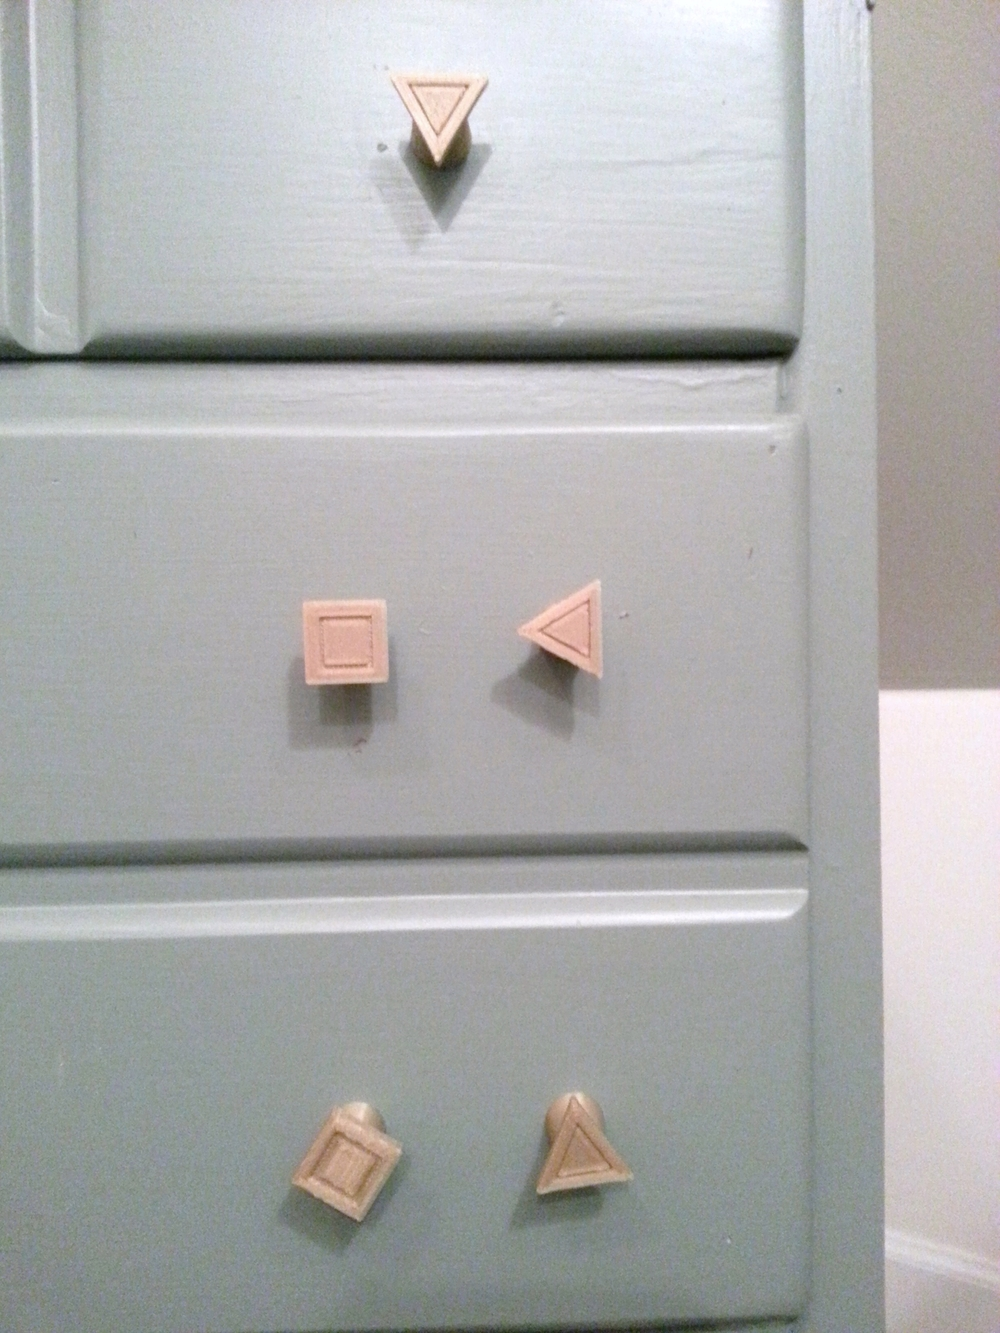 Square & Triangular Knobs